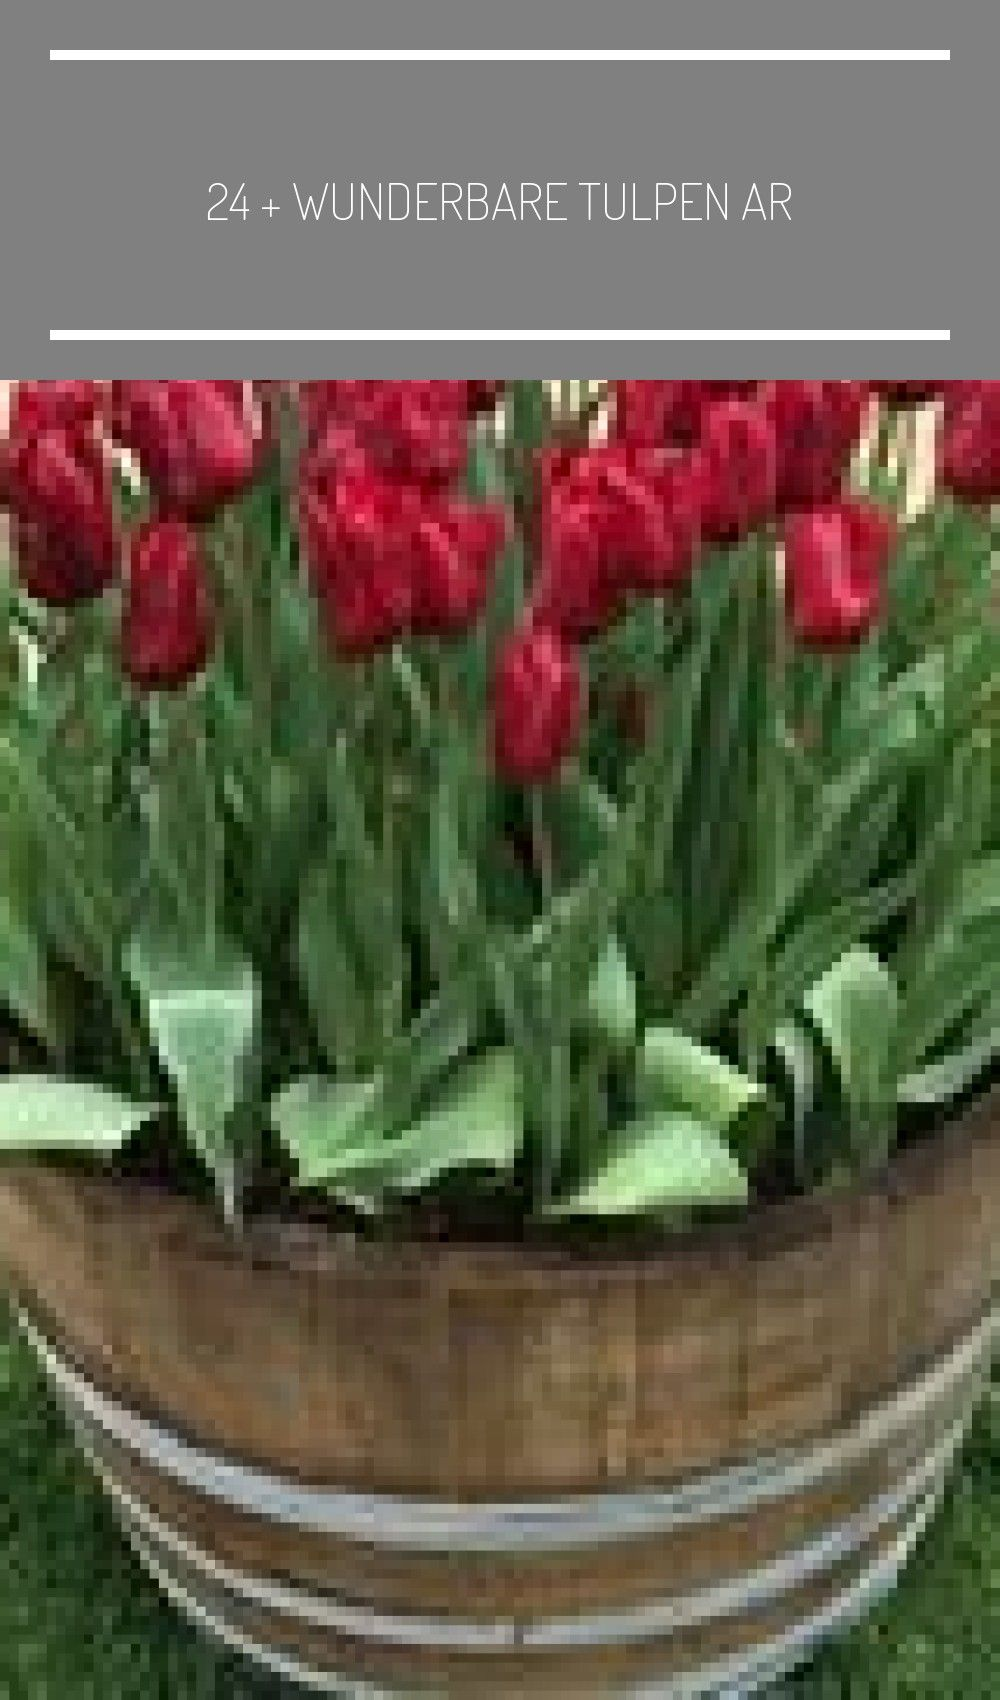 24 + wunderbare Tulpen Arrangement Tipps für Ihre Home Garden Ideen,  #Arrangement #beautifulhomegarden #besthomegarden #dreamhomegarden #easyhomegarden #für #Garden #home #homegardenaesthetic #homegardenapartment #homegardenarchitecture #homegardenbackyard #homegardenbalcony #homegardenbar #homegardenbeginner #homegardenboxes #homegardendecoration #homegardendesign #homegardendiy #... #propagating succulents container 24 + wunderbare Tulpen Arrangement Tipps für Ihre Home Garden Ideen